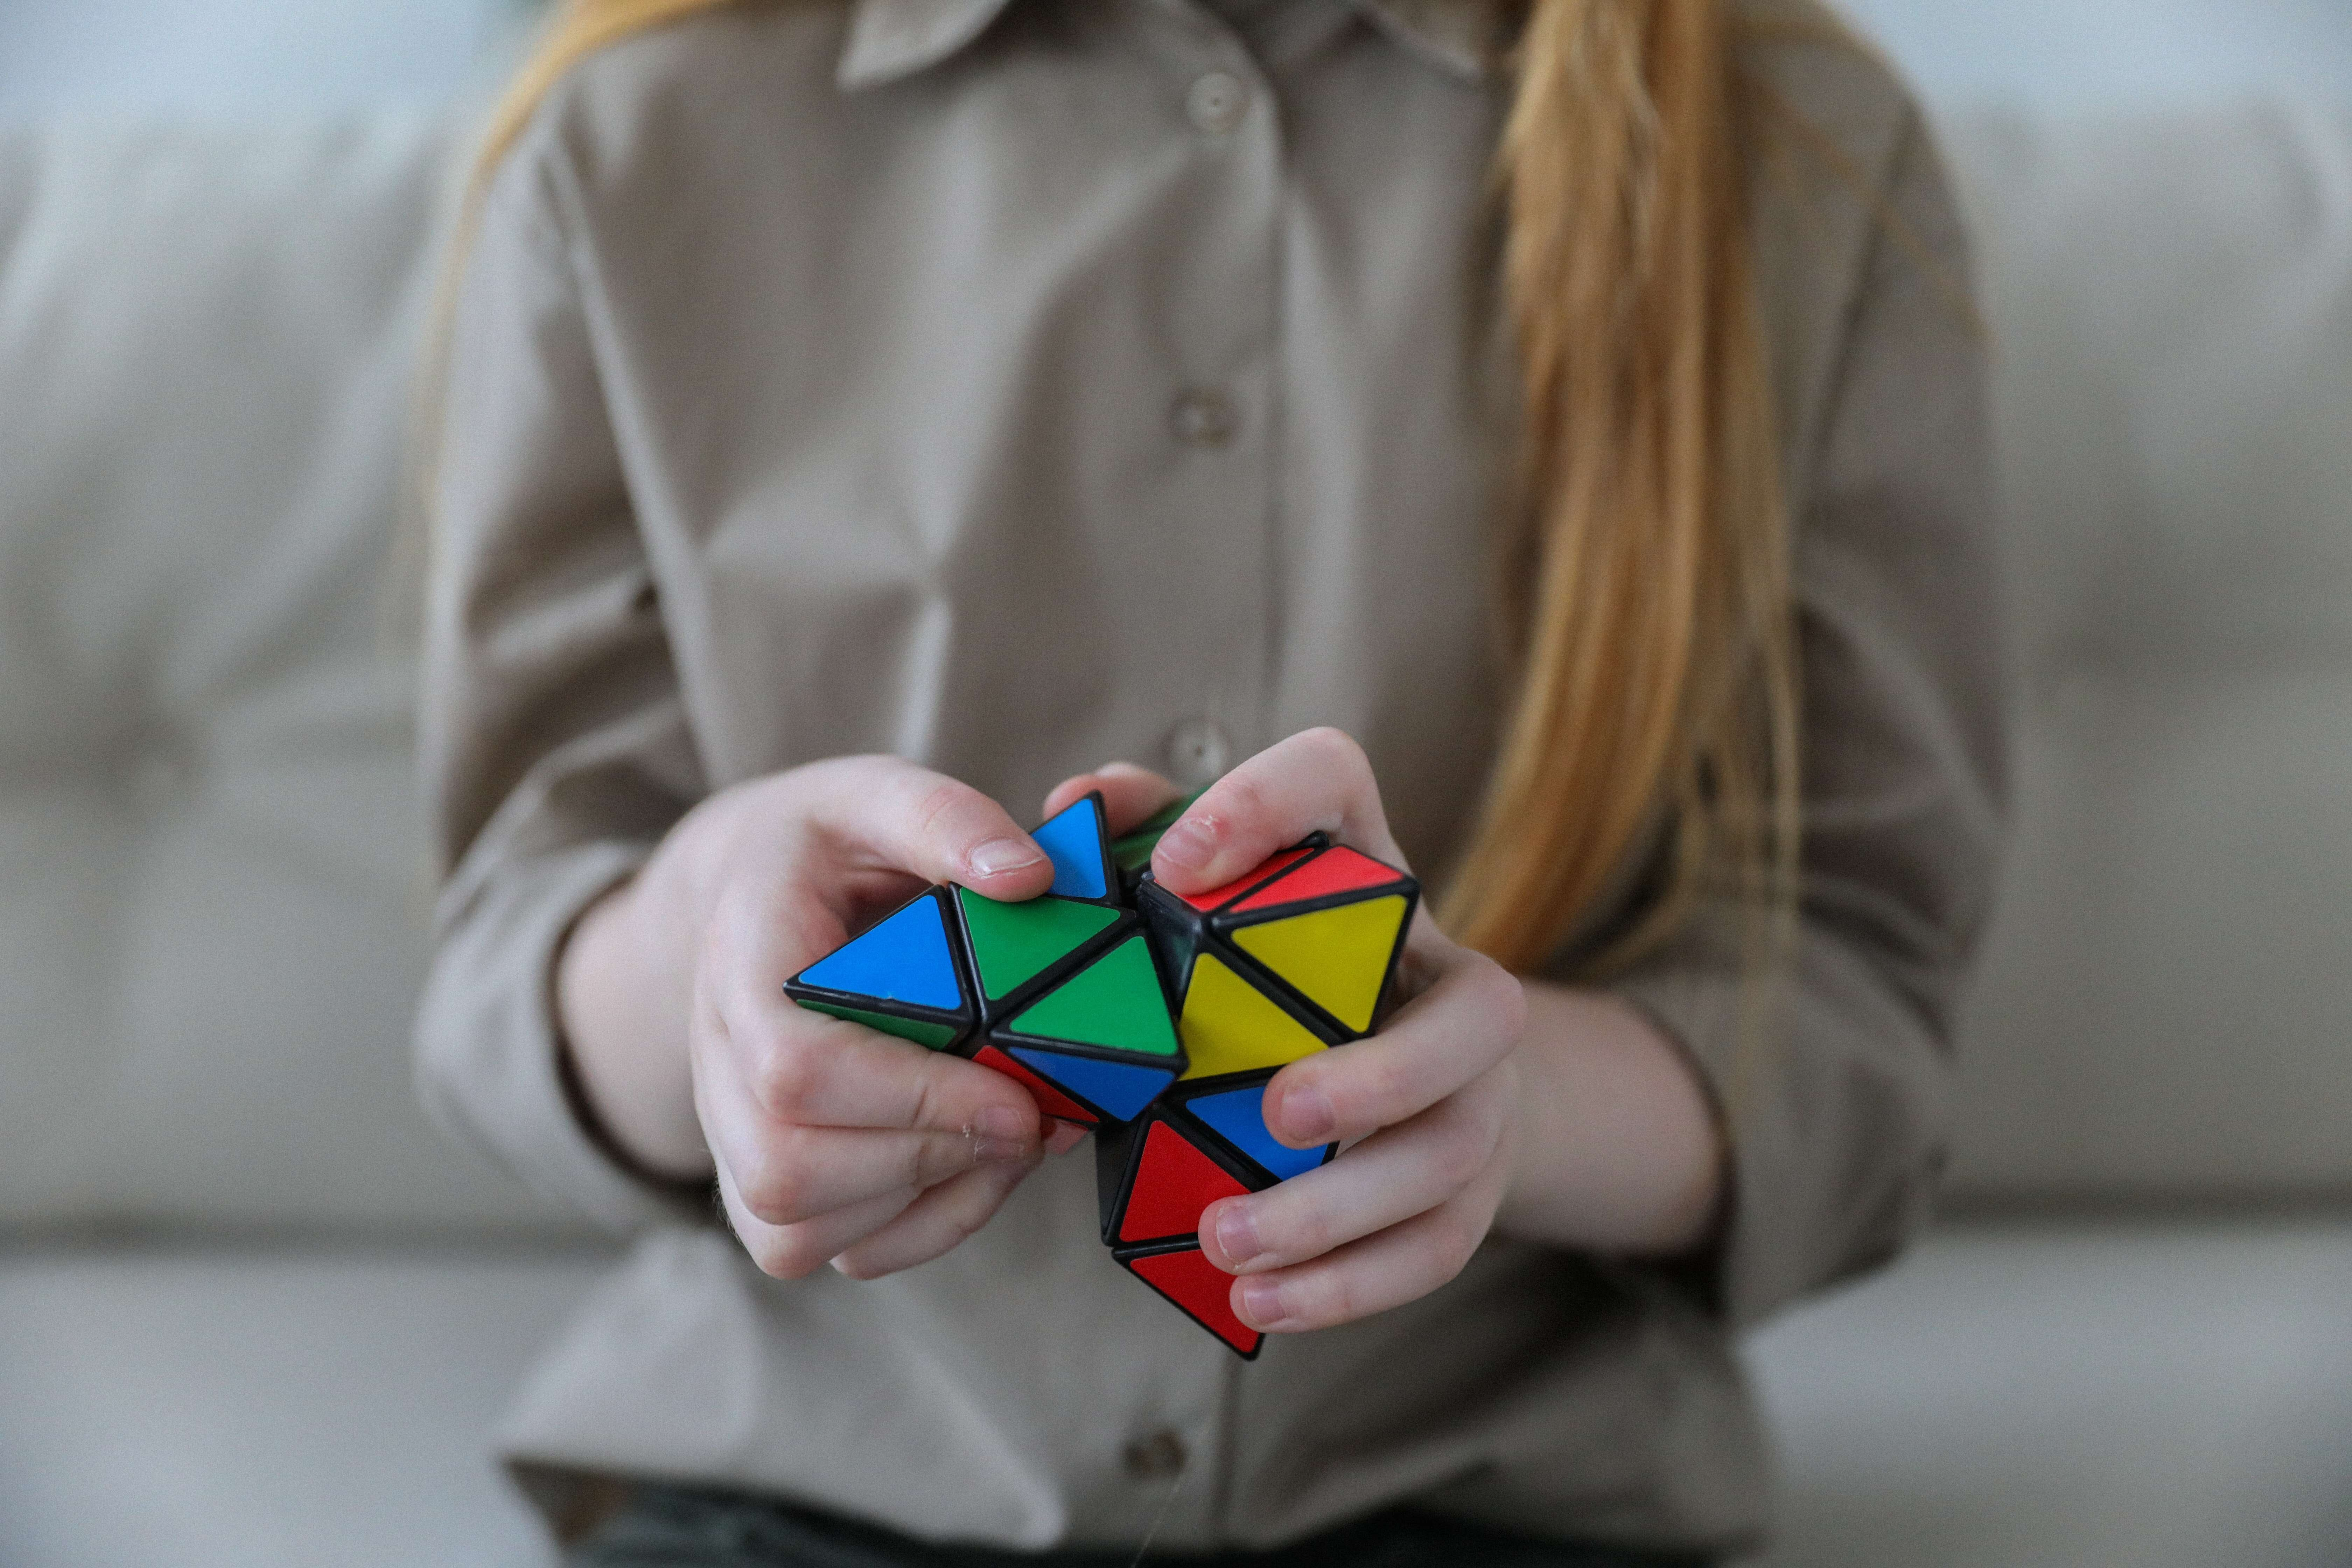 Girl with red hair plays with bright rubik's cube style puzzle brain teaser